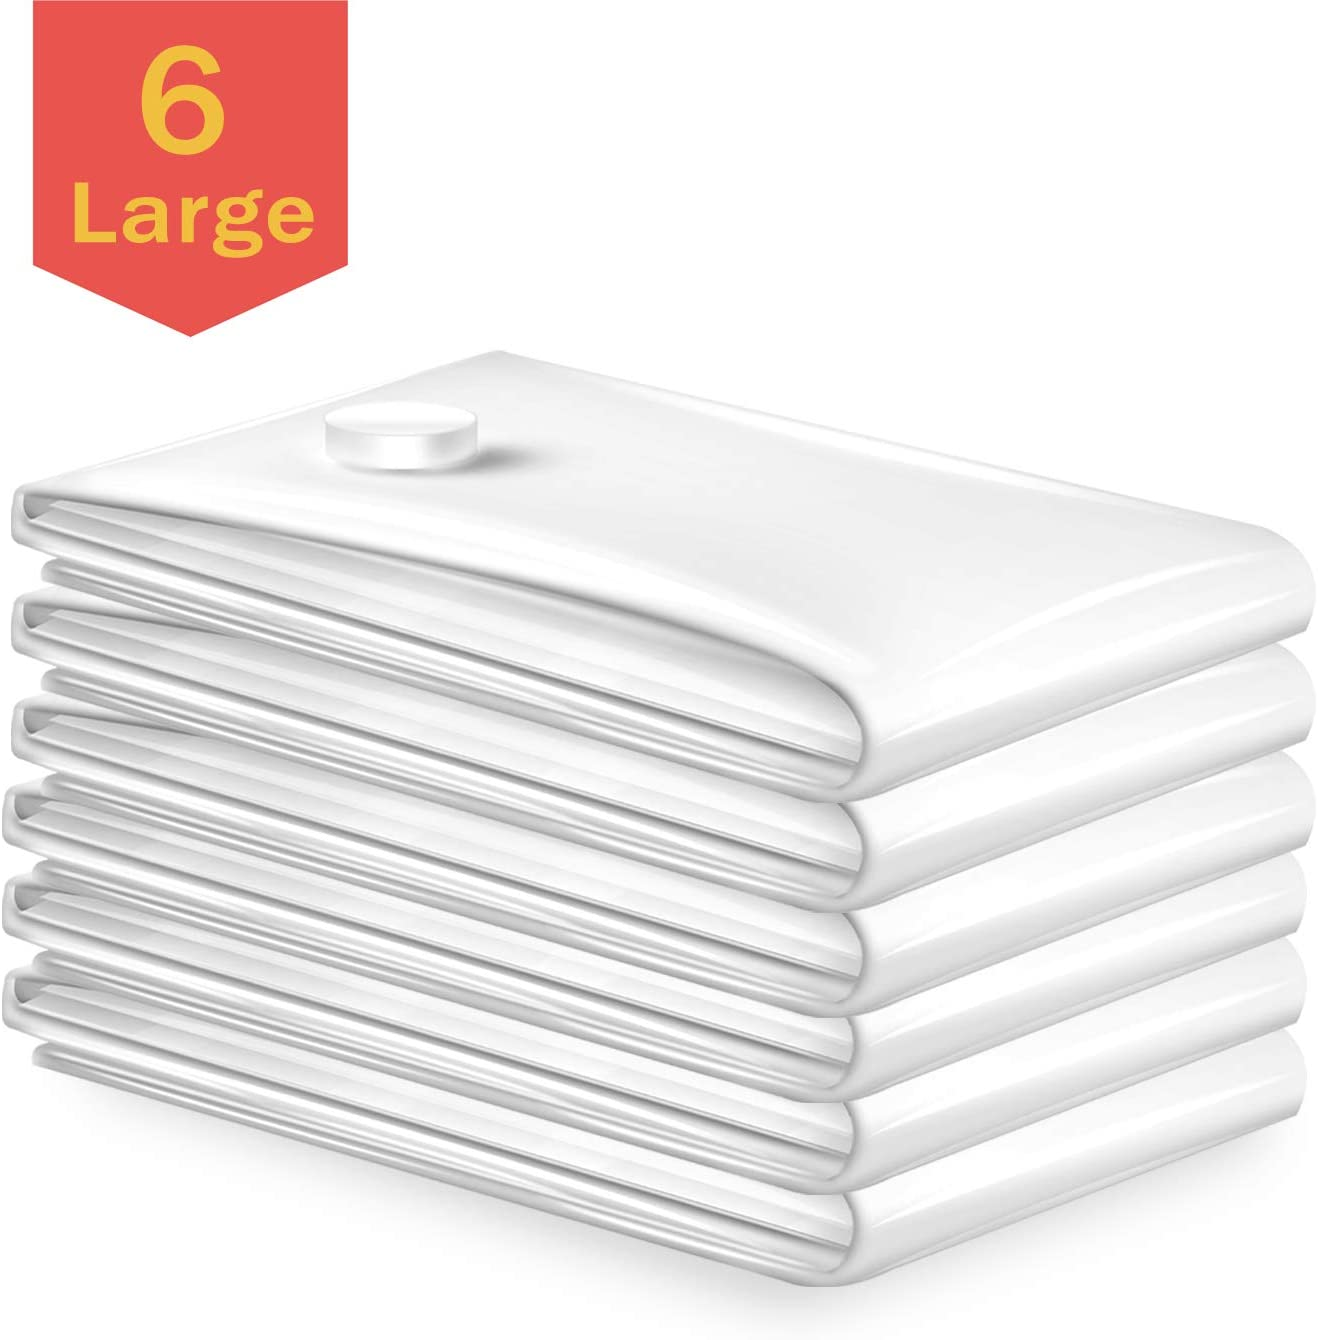 Vacbird Vacuum Storage Bags, Space Saver Storage Bags for Clothes, Blankets, Comforters, Pillows Home Use and Travel Storage Compression Bags (Large 6 Pack)